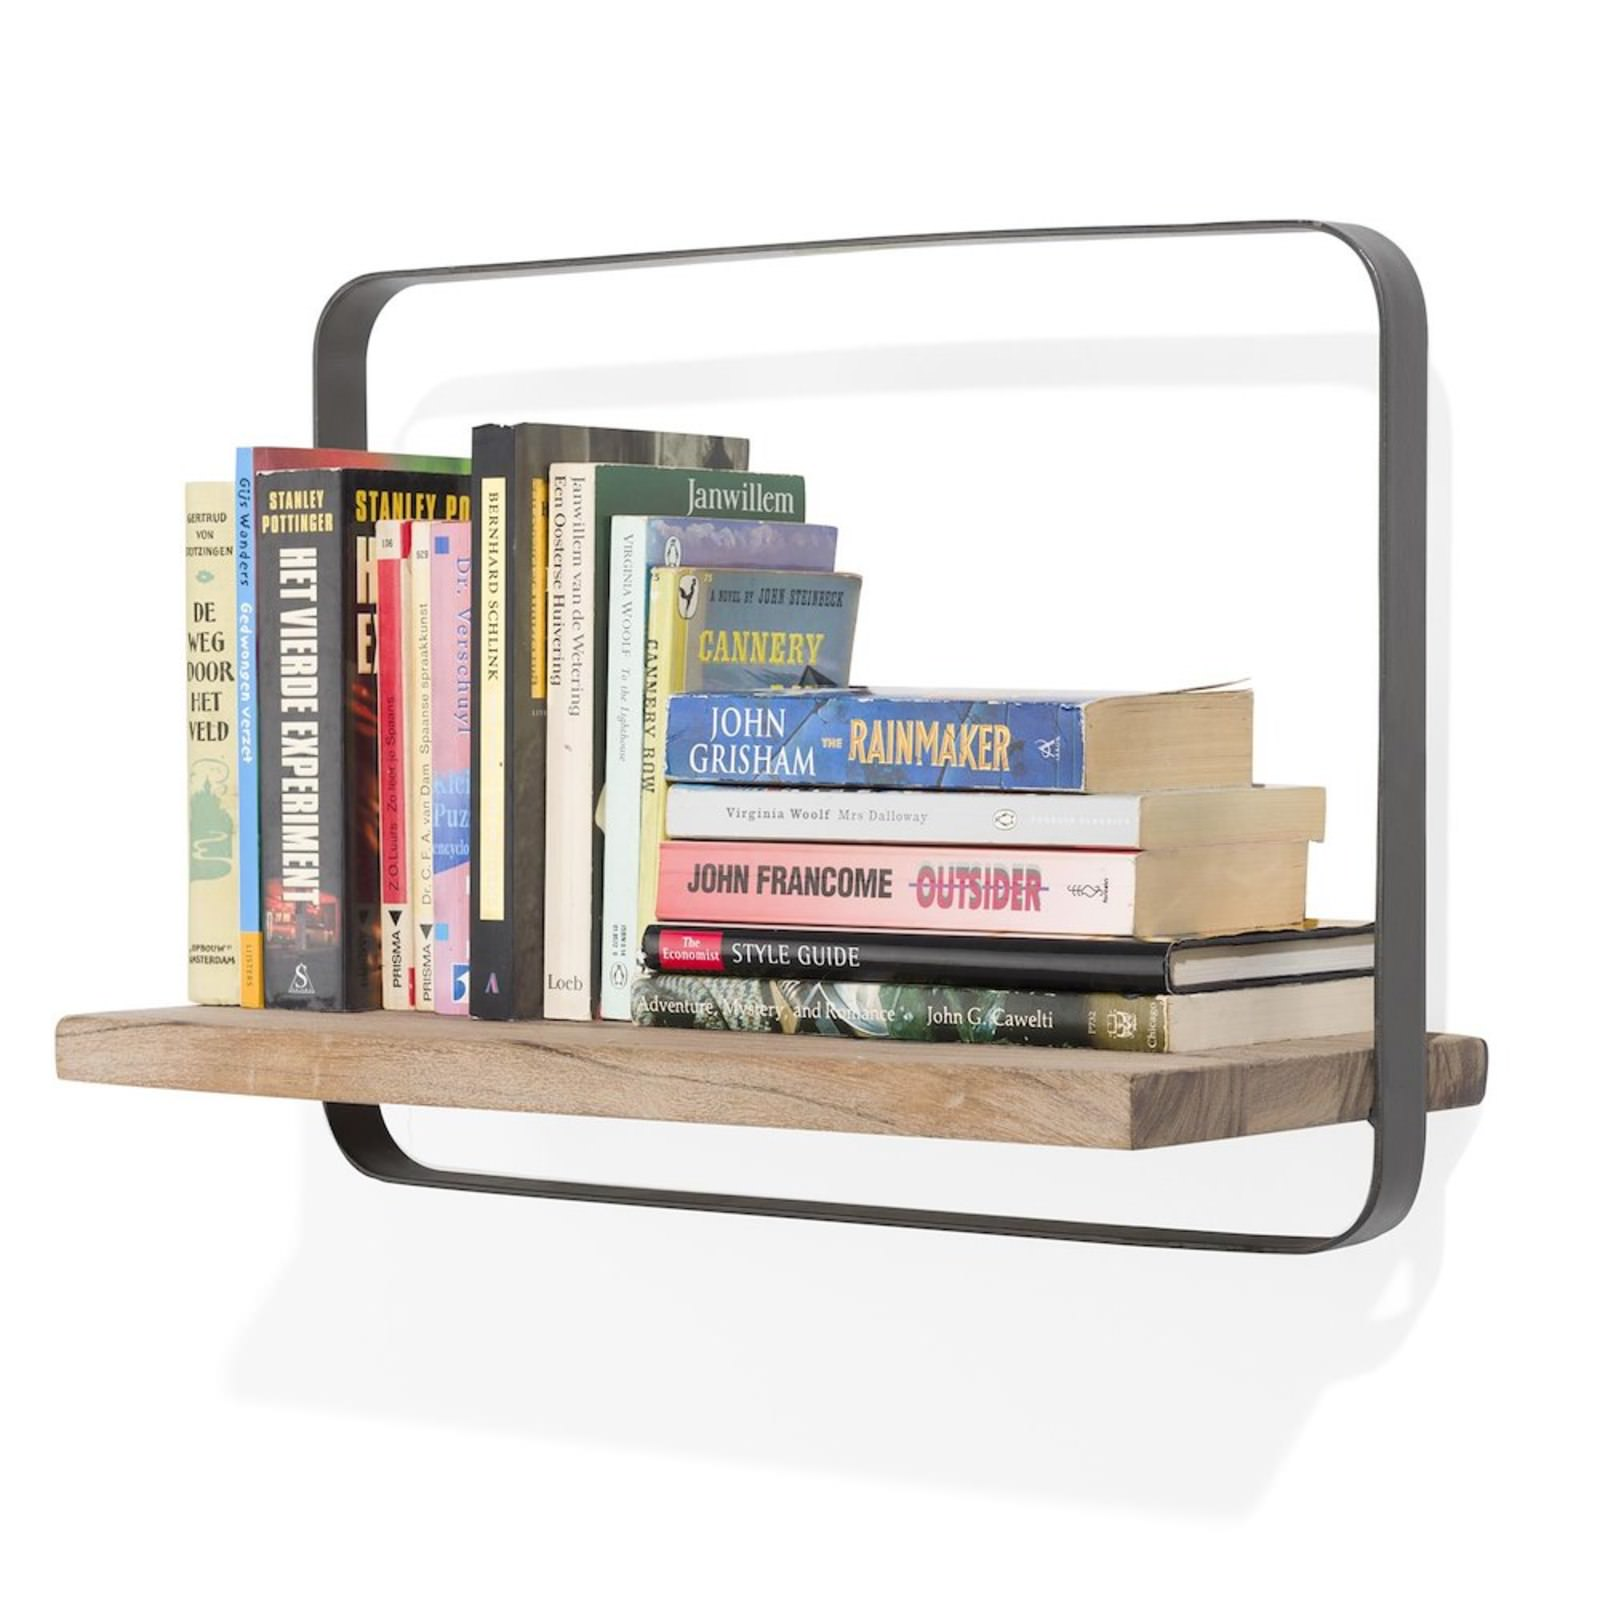 SYSTEME D'ETAGERE ROSETTA